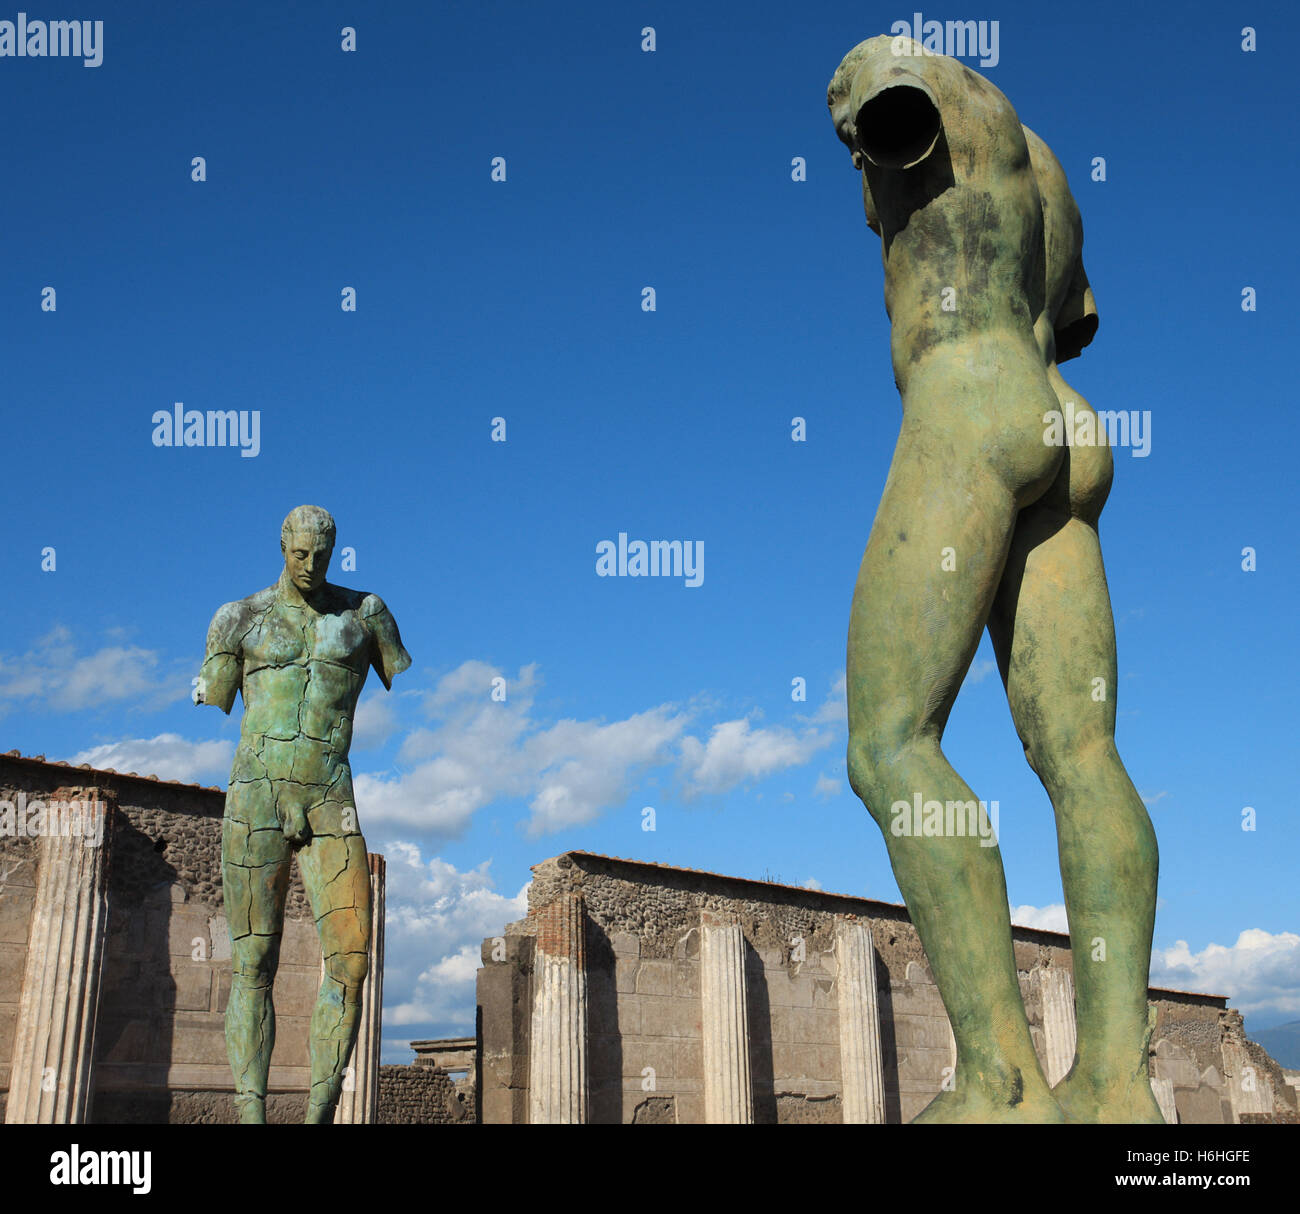 Modern sculptures  by Igor Mitoraj on show at the ancient site of Pompeii near Naples Italy - Stock Image